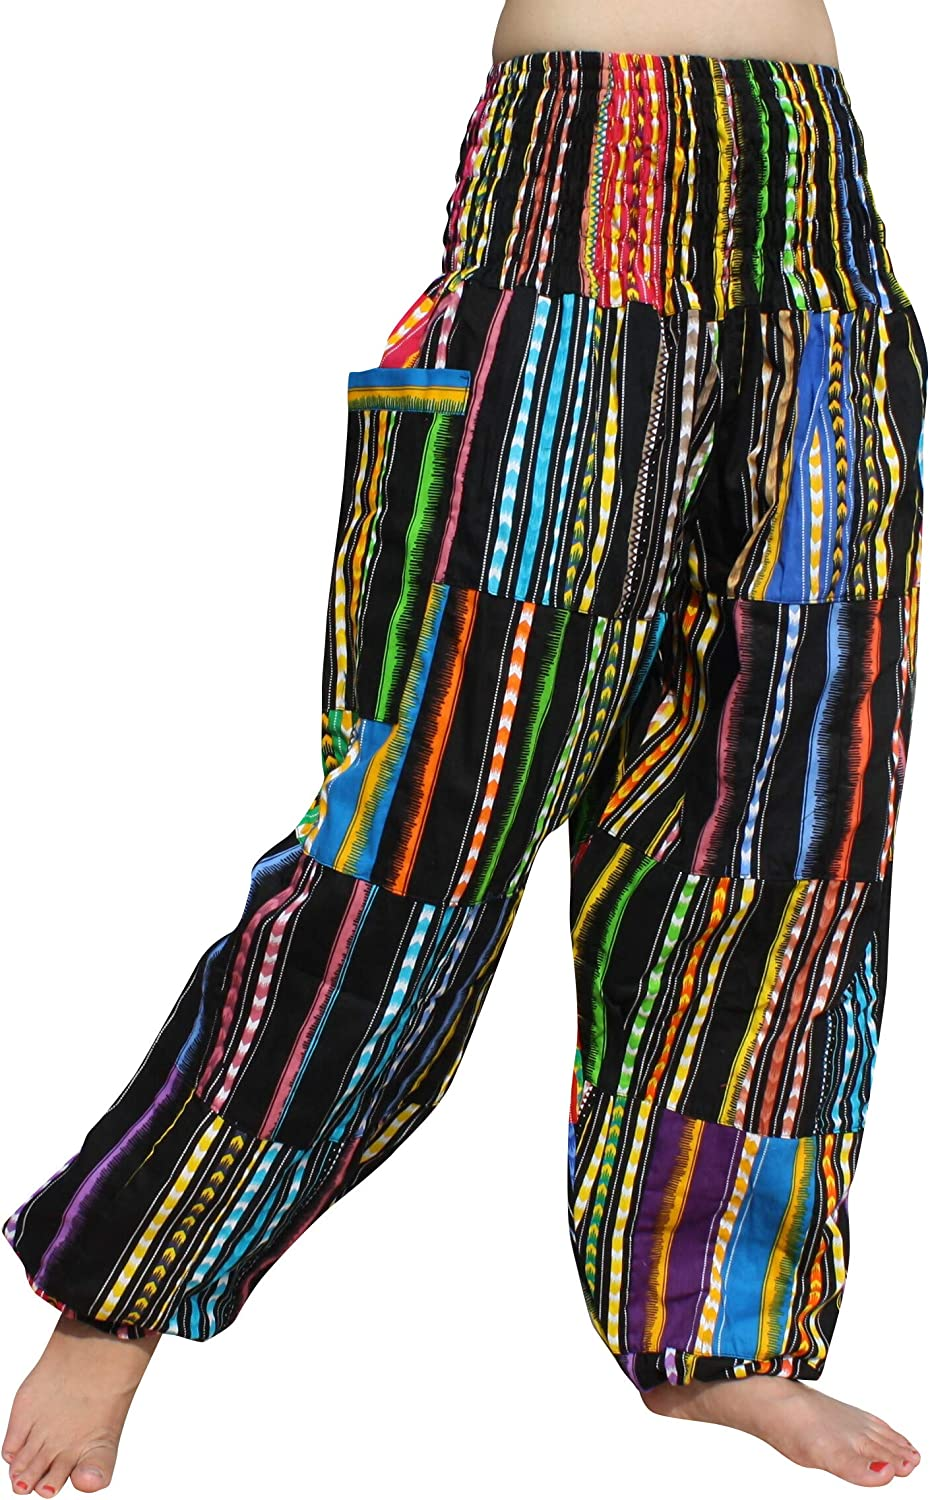 Full High quality new Funk specialty shop Smock Waist African Elastic Long Dashiki H Patch